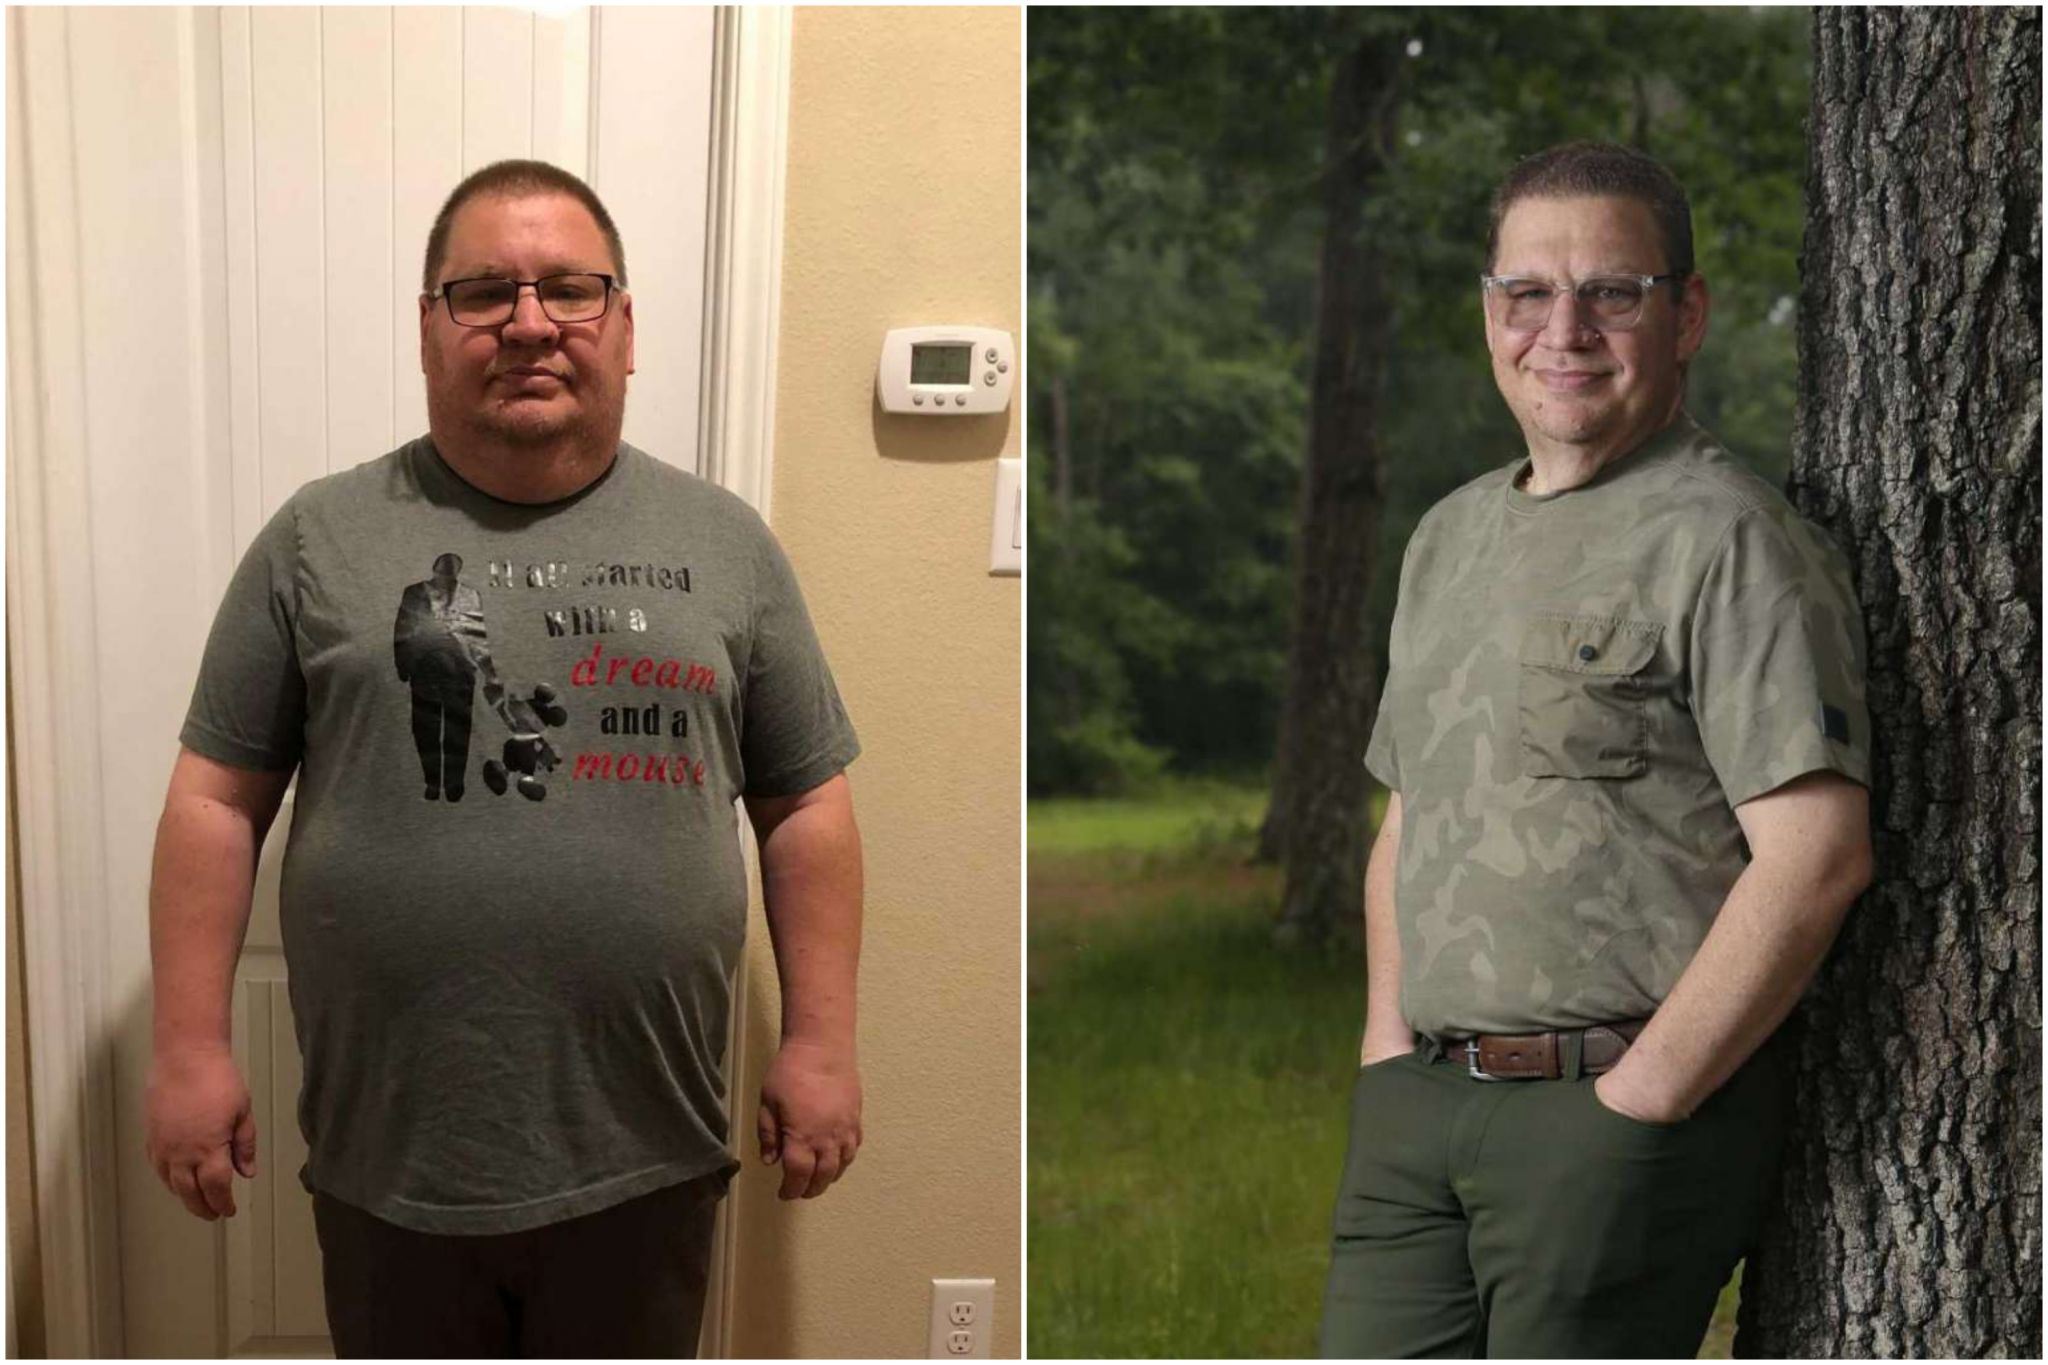 'Sick and tired of being sick and tired,' Conroe man commits to life change, loses 105 pounds